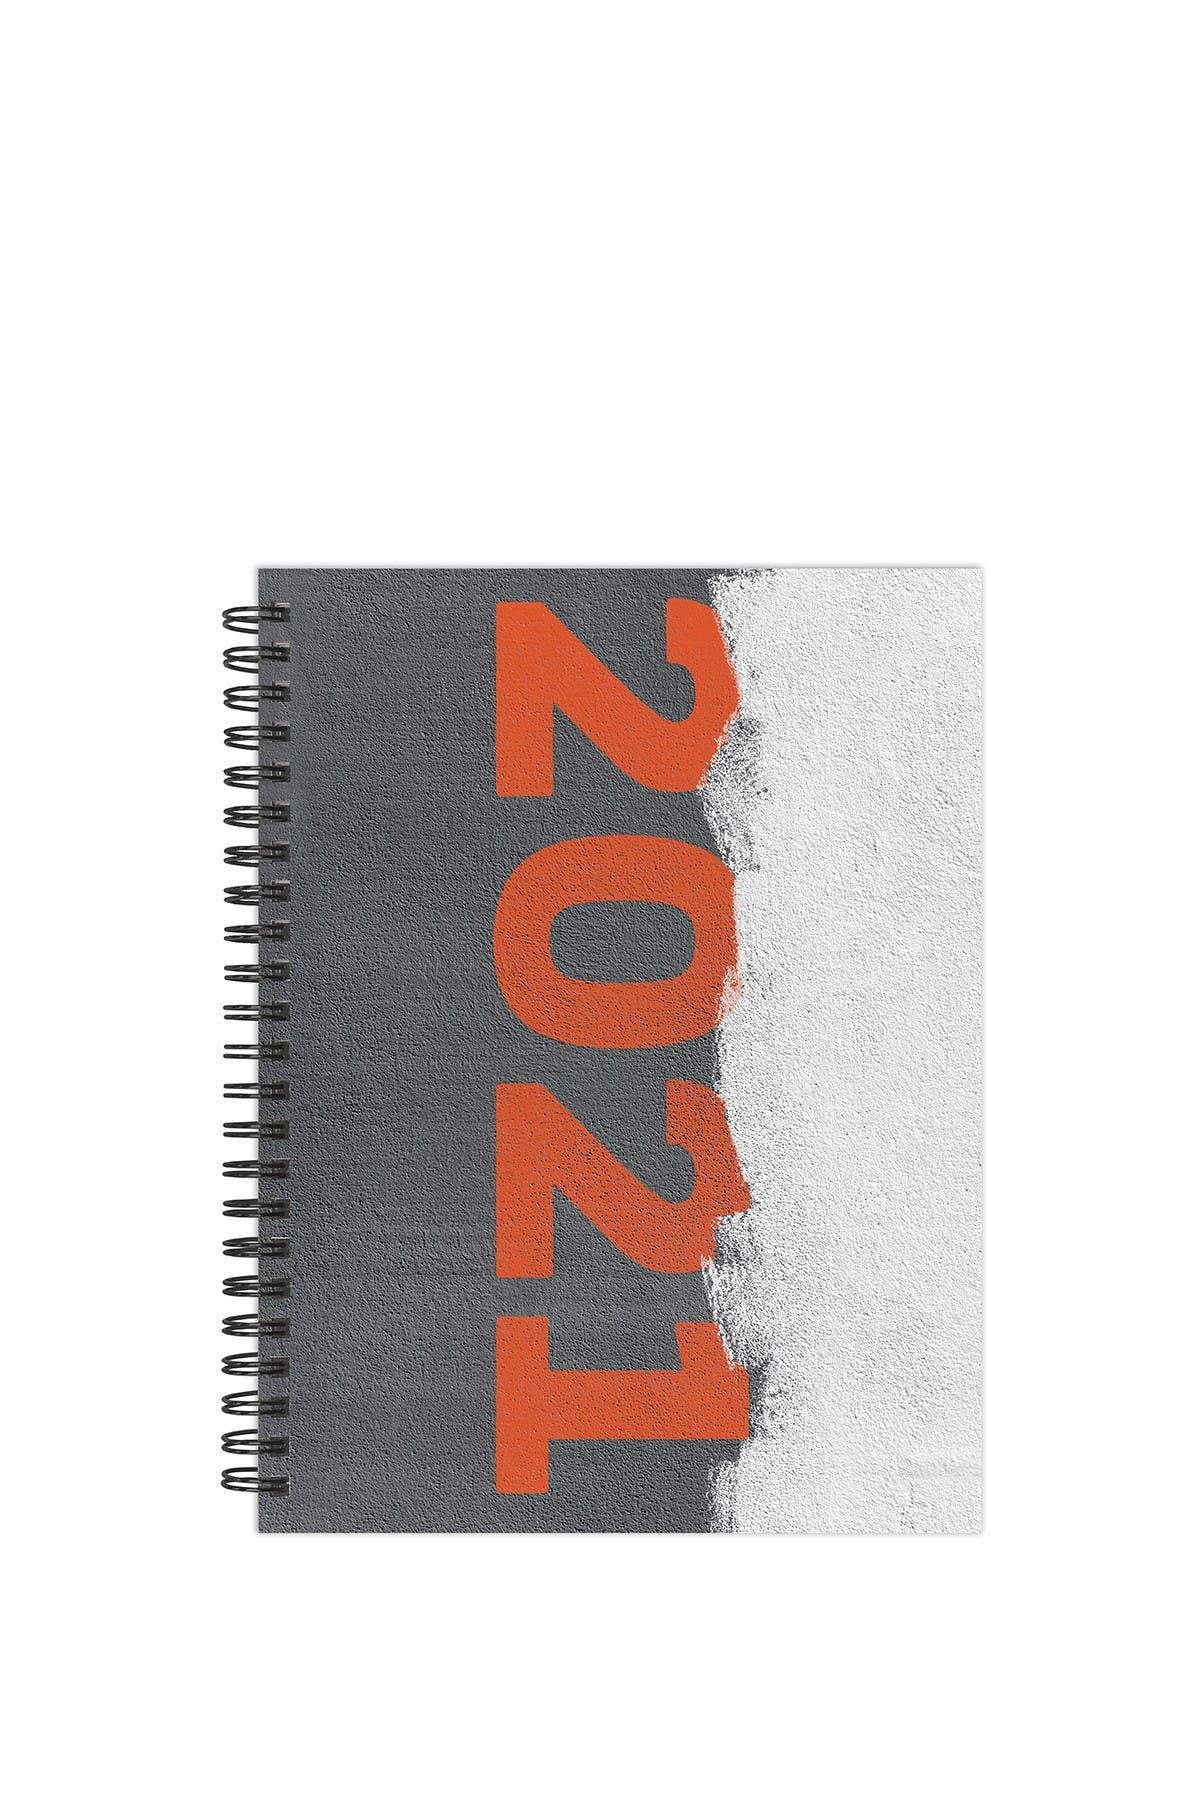 Image of TF Publishing 2021 Chasing Pavement Medium Weekly Monthly Planner